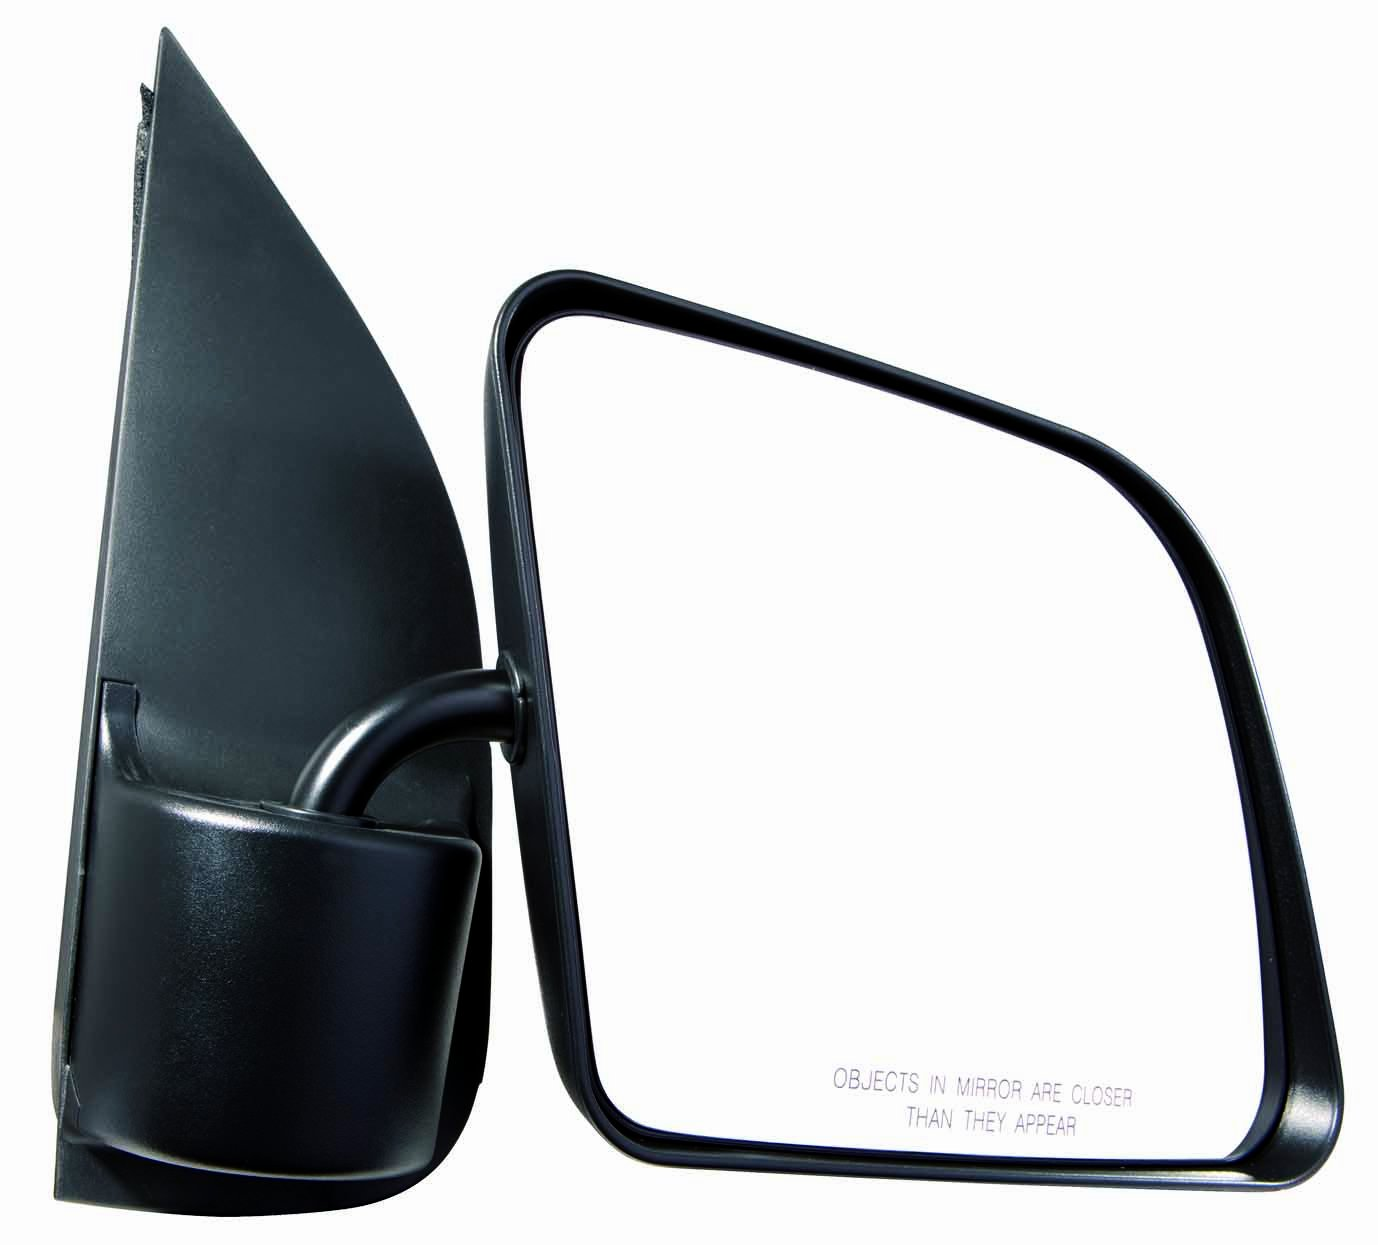 for 1992 1993 1994 1995 1996 1997 1998 1999 2000 2001 2002 2003 2004 2005 2006 2007 Ford Ecoline Van Manual Side Mirror Driver Side Replacement